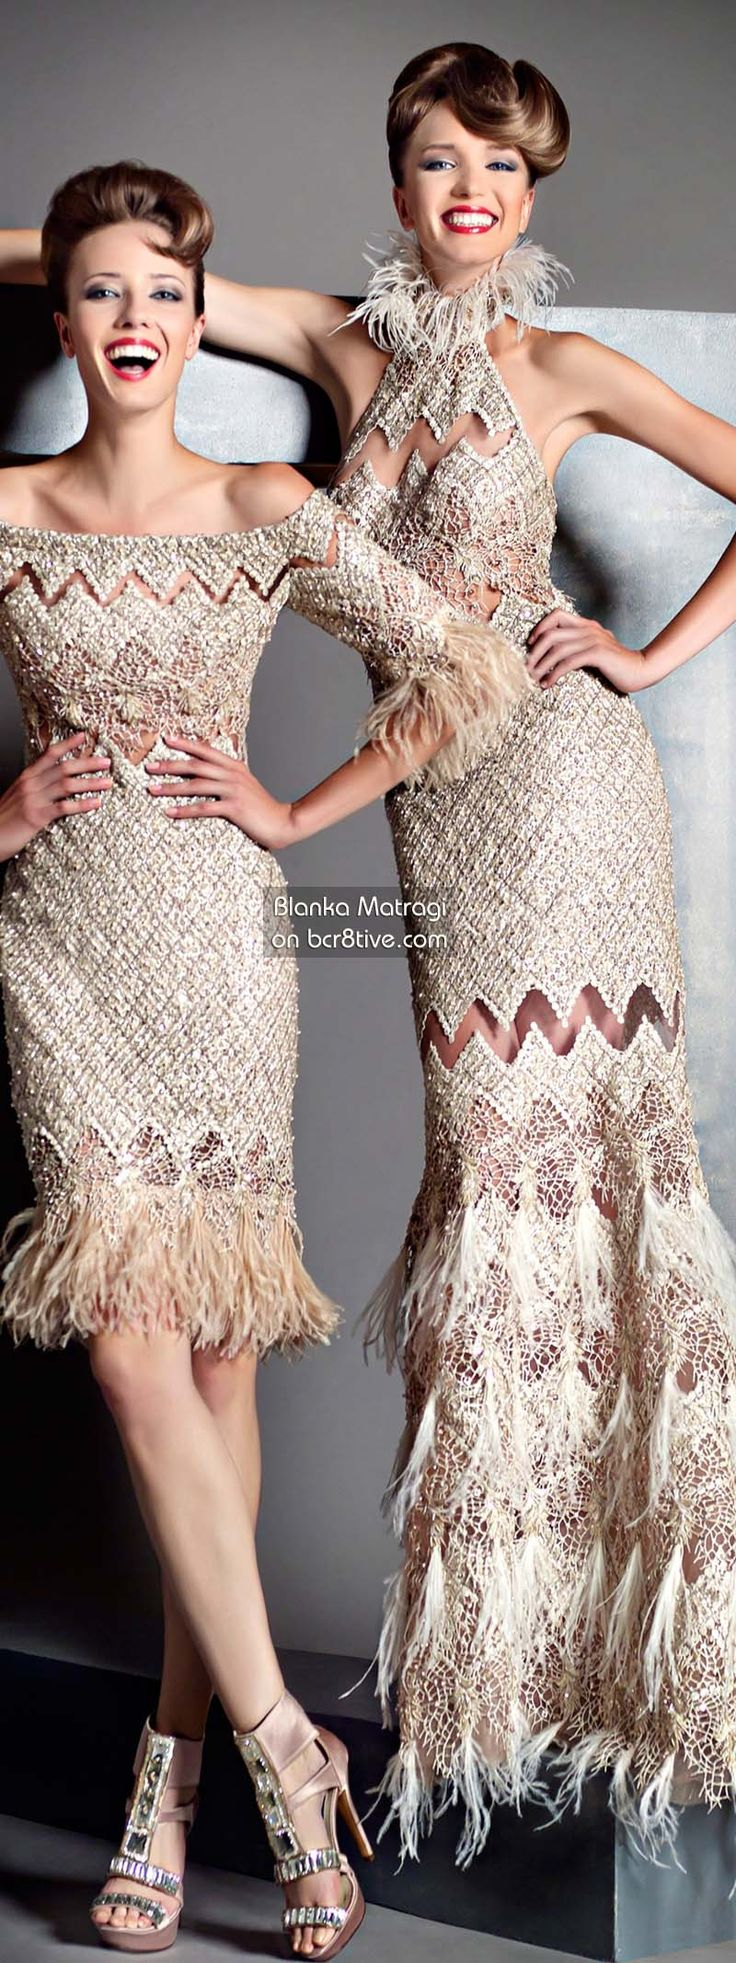 Blanka Matragi 30th Anniversary Couture Collection on bcr8tive.com